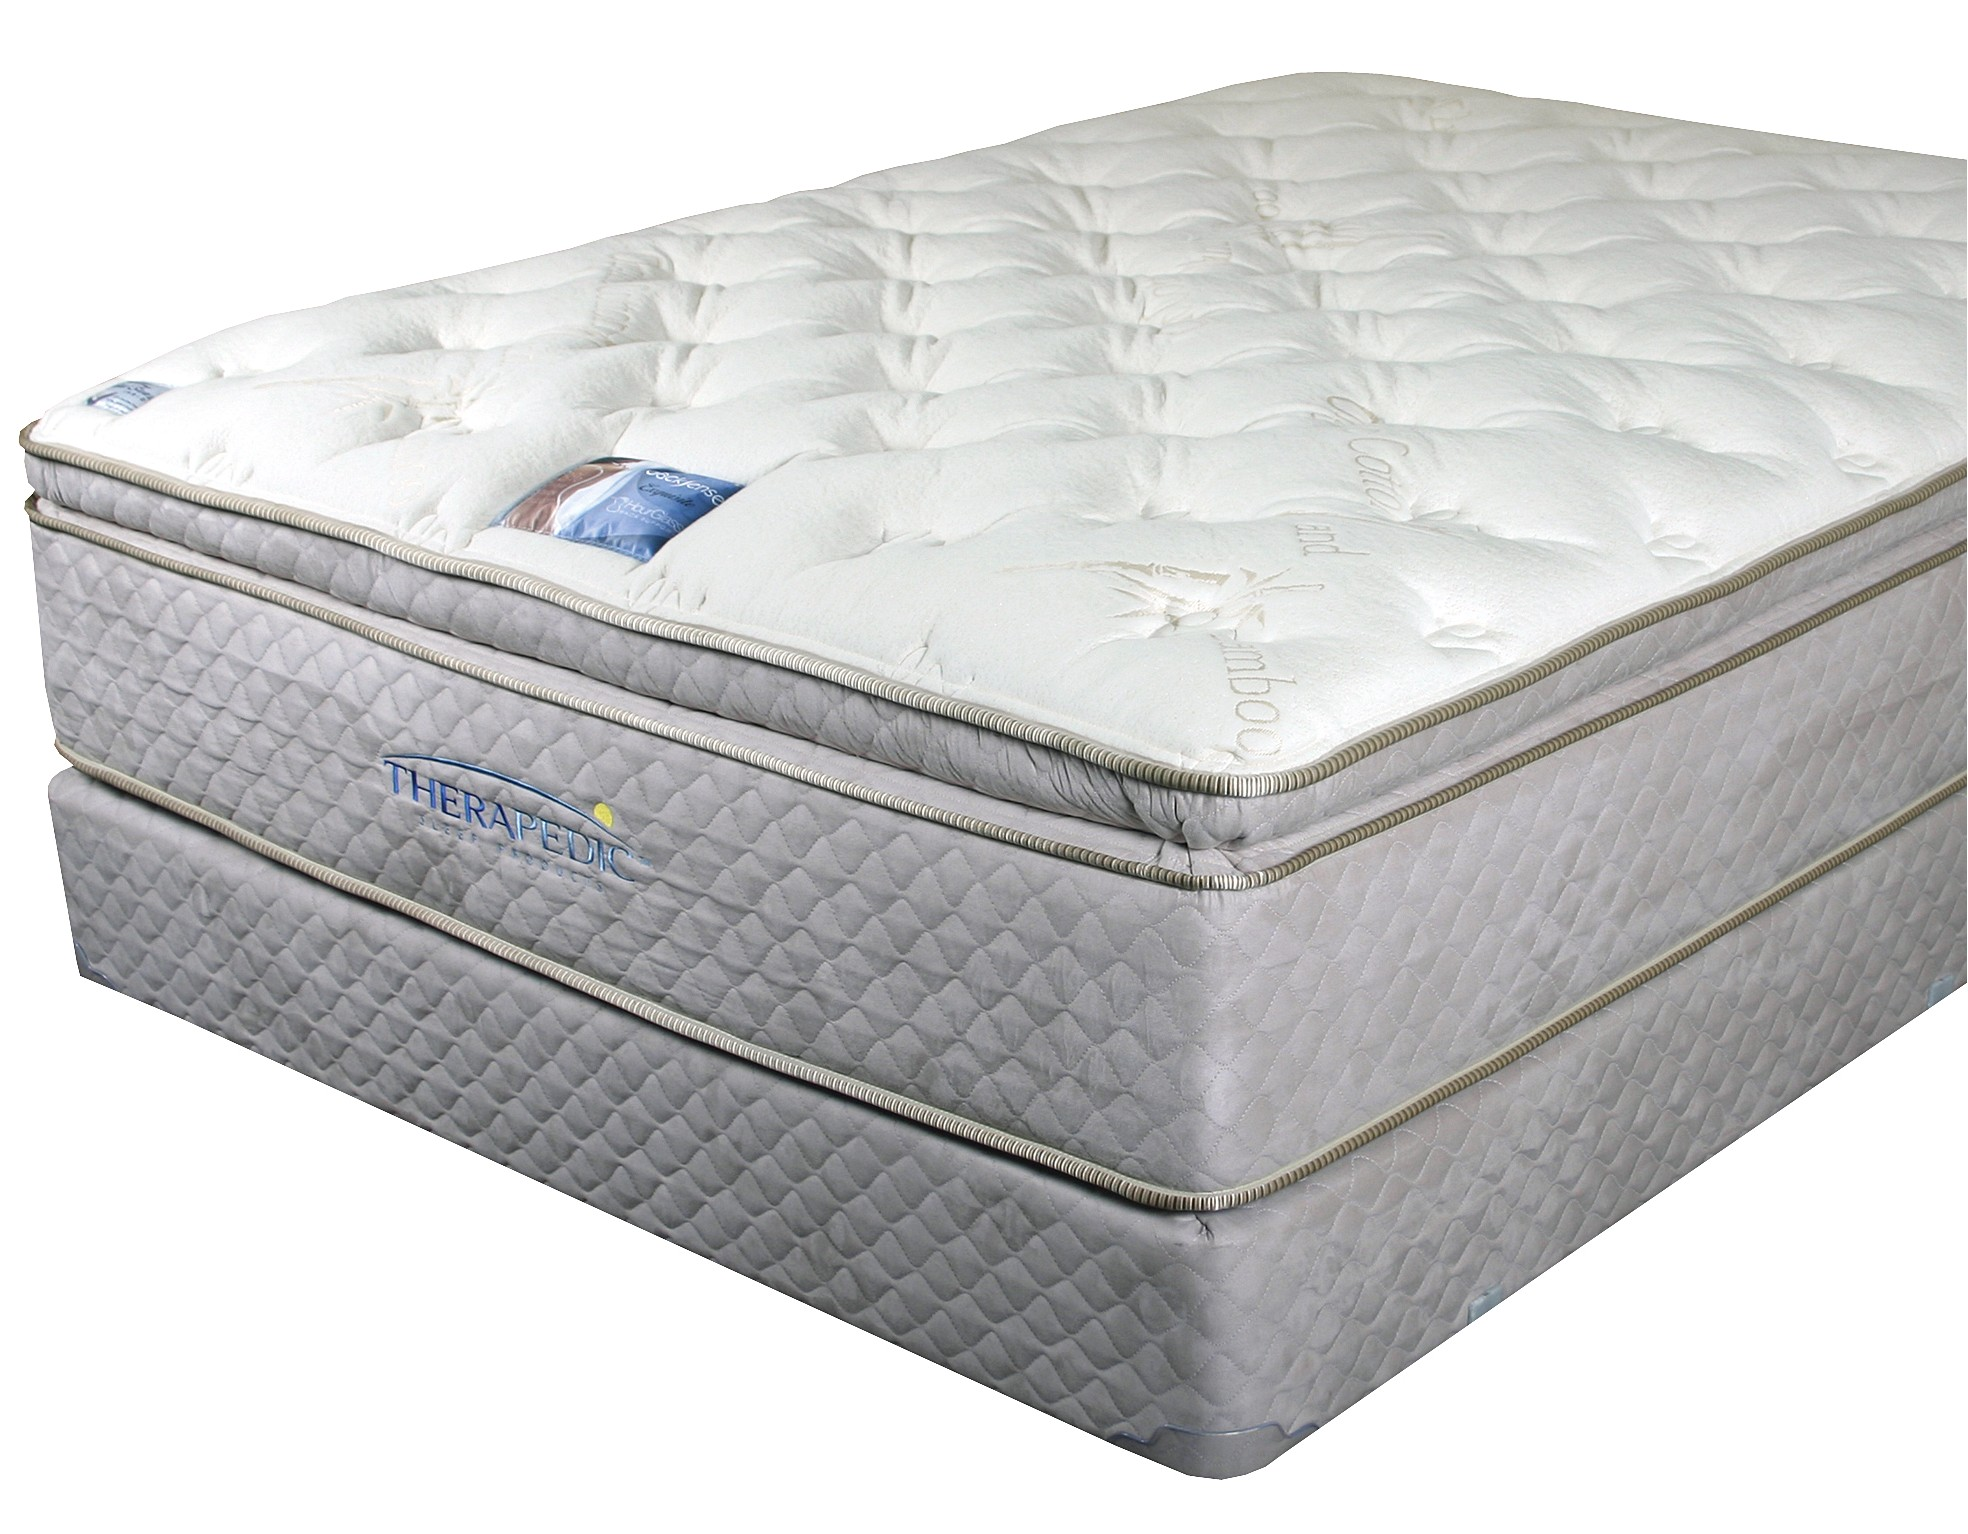 therapedic backsense elite plush latex pillow top legacy